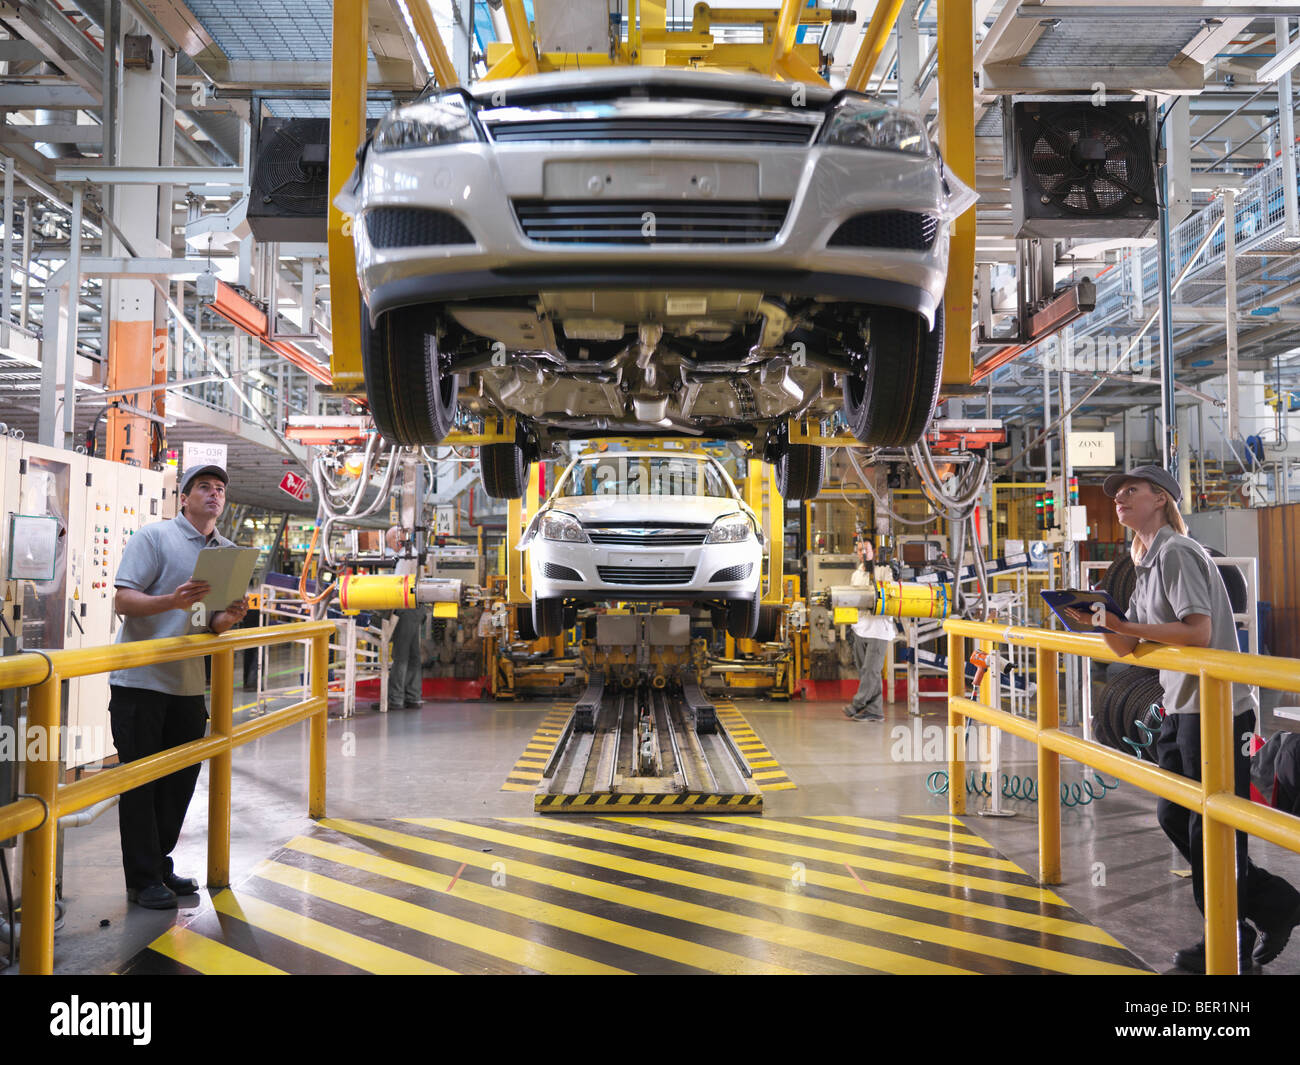 Car Workers Inspecting Production Line - Stock Image